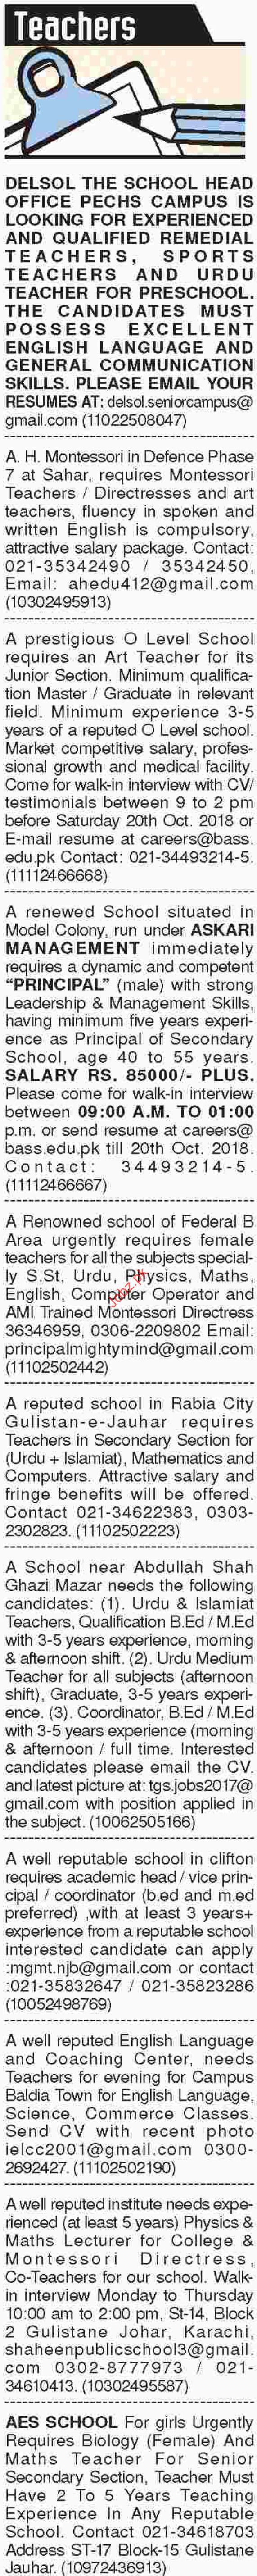 Dawn Sunday Classified Ads for Teaching Staff Jobs 2018